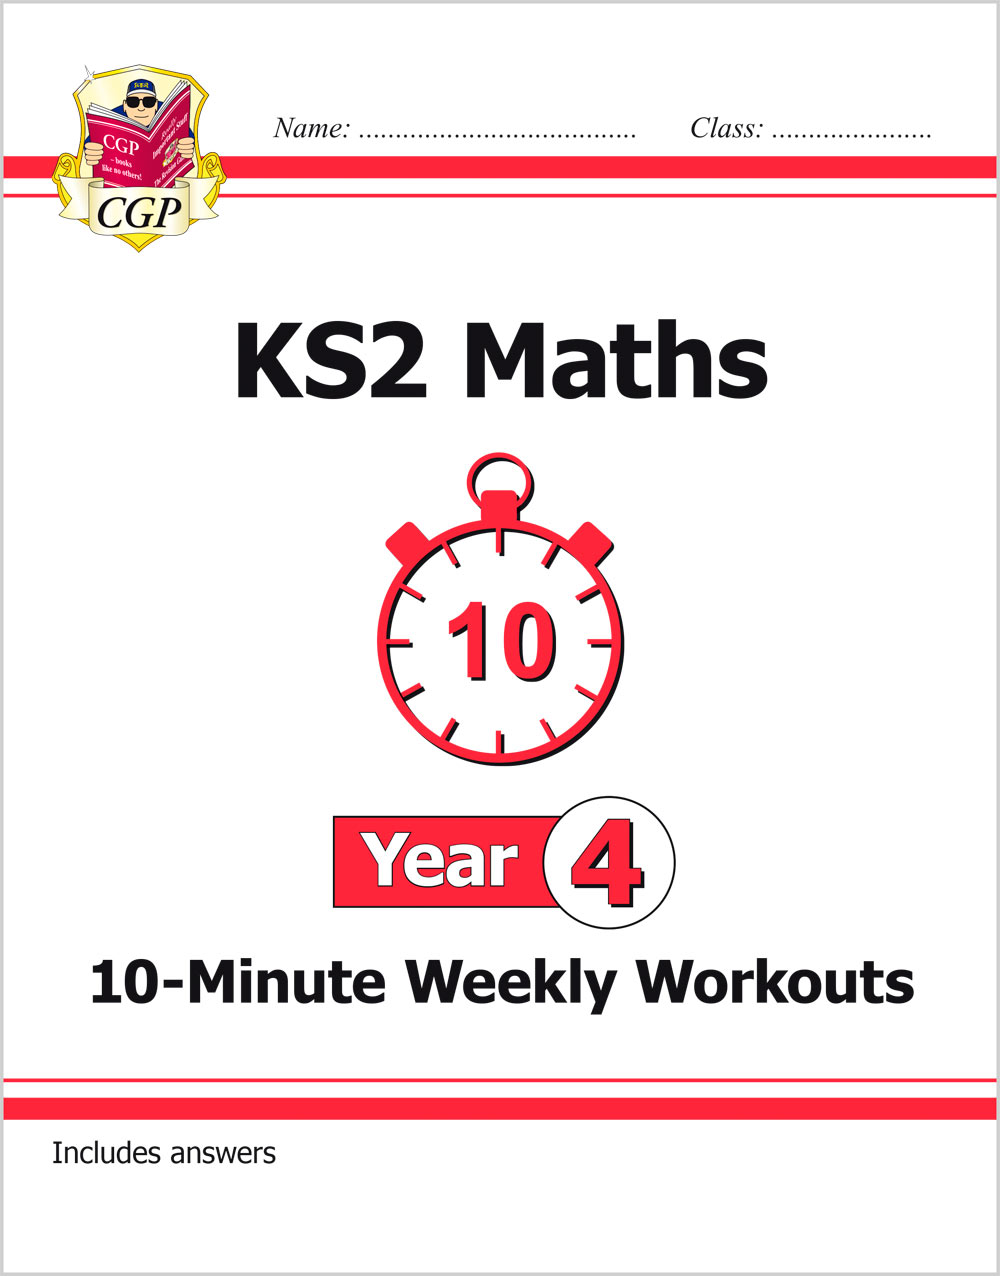 M4XW21 - New KS2 Maths 10-Minute Weekly Workouts - Year 4